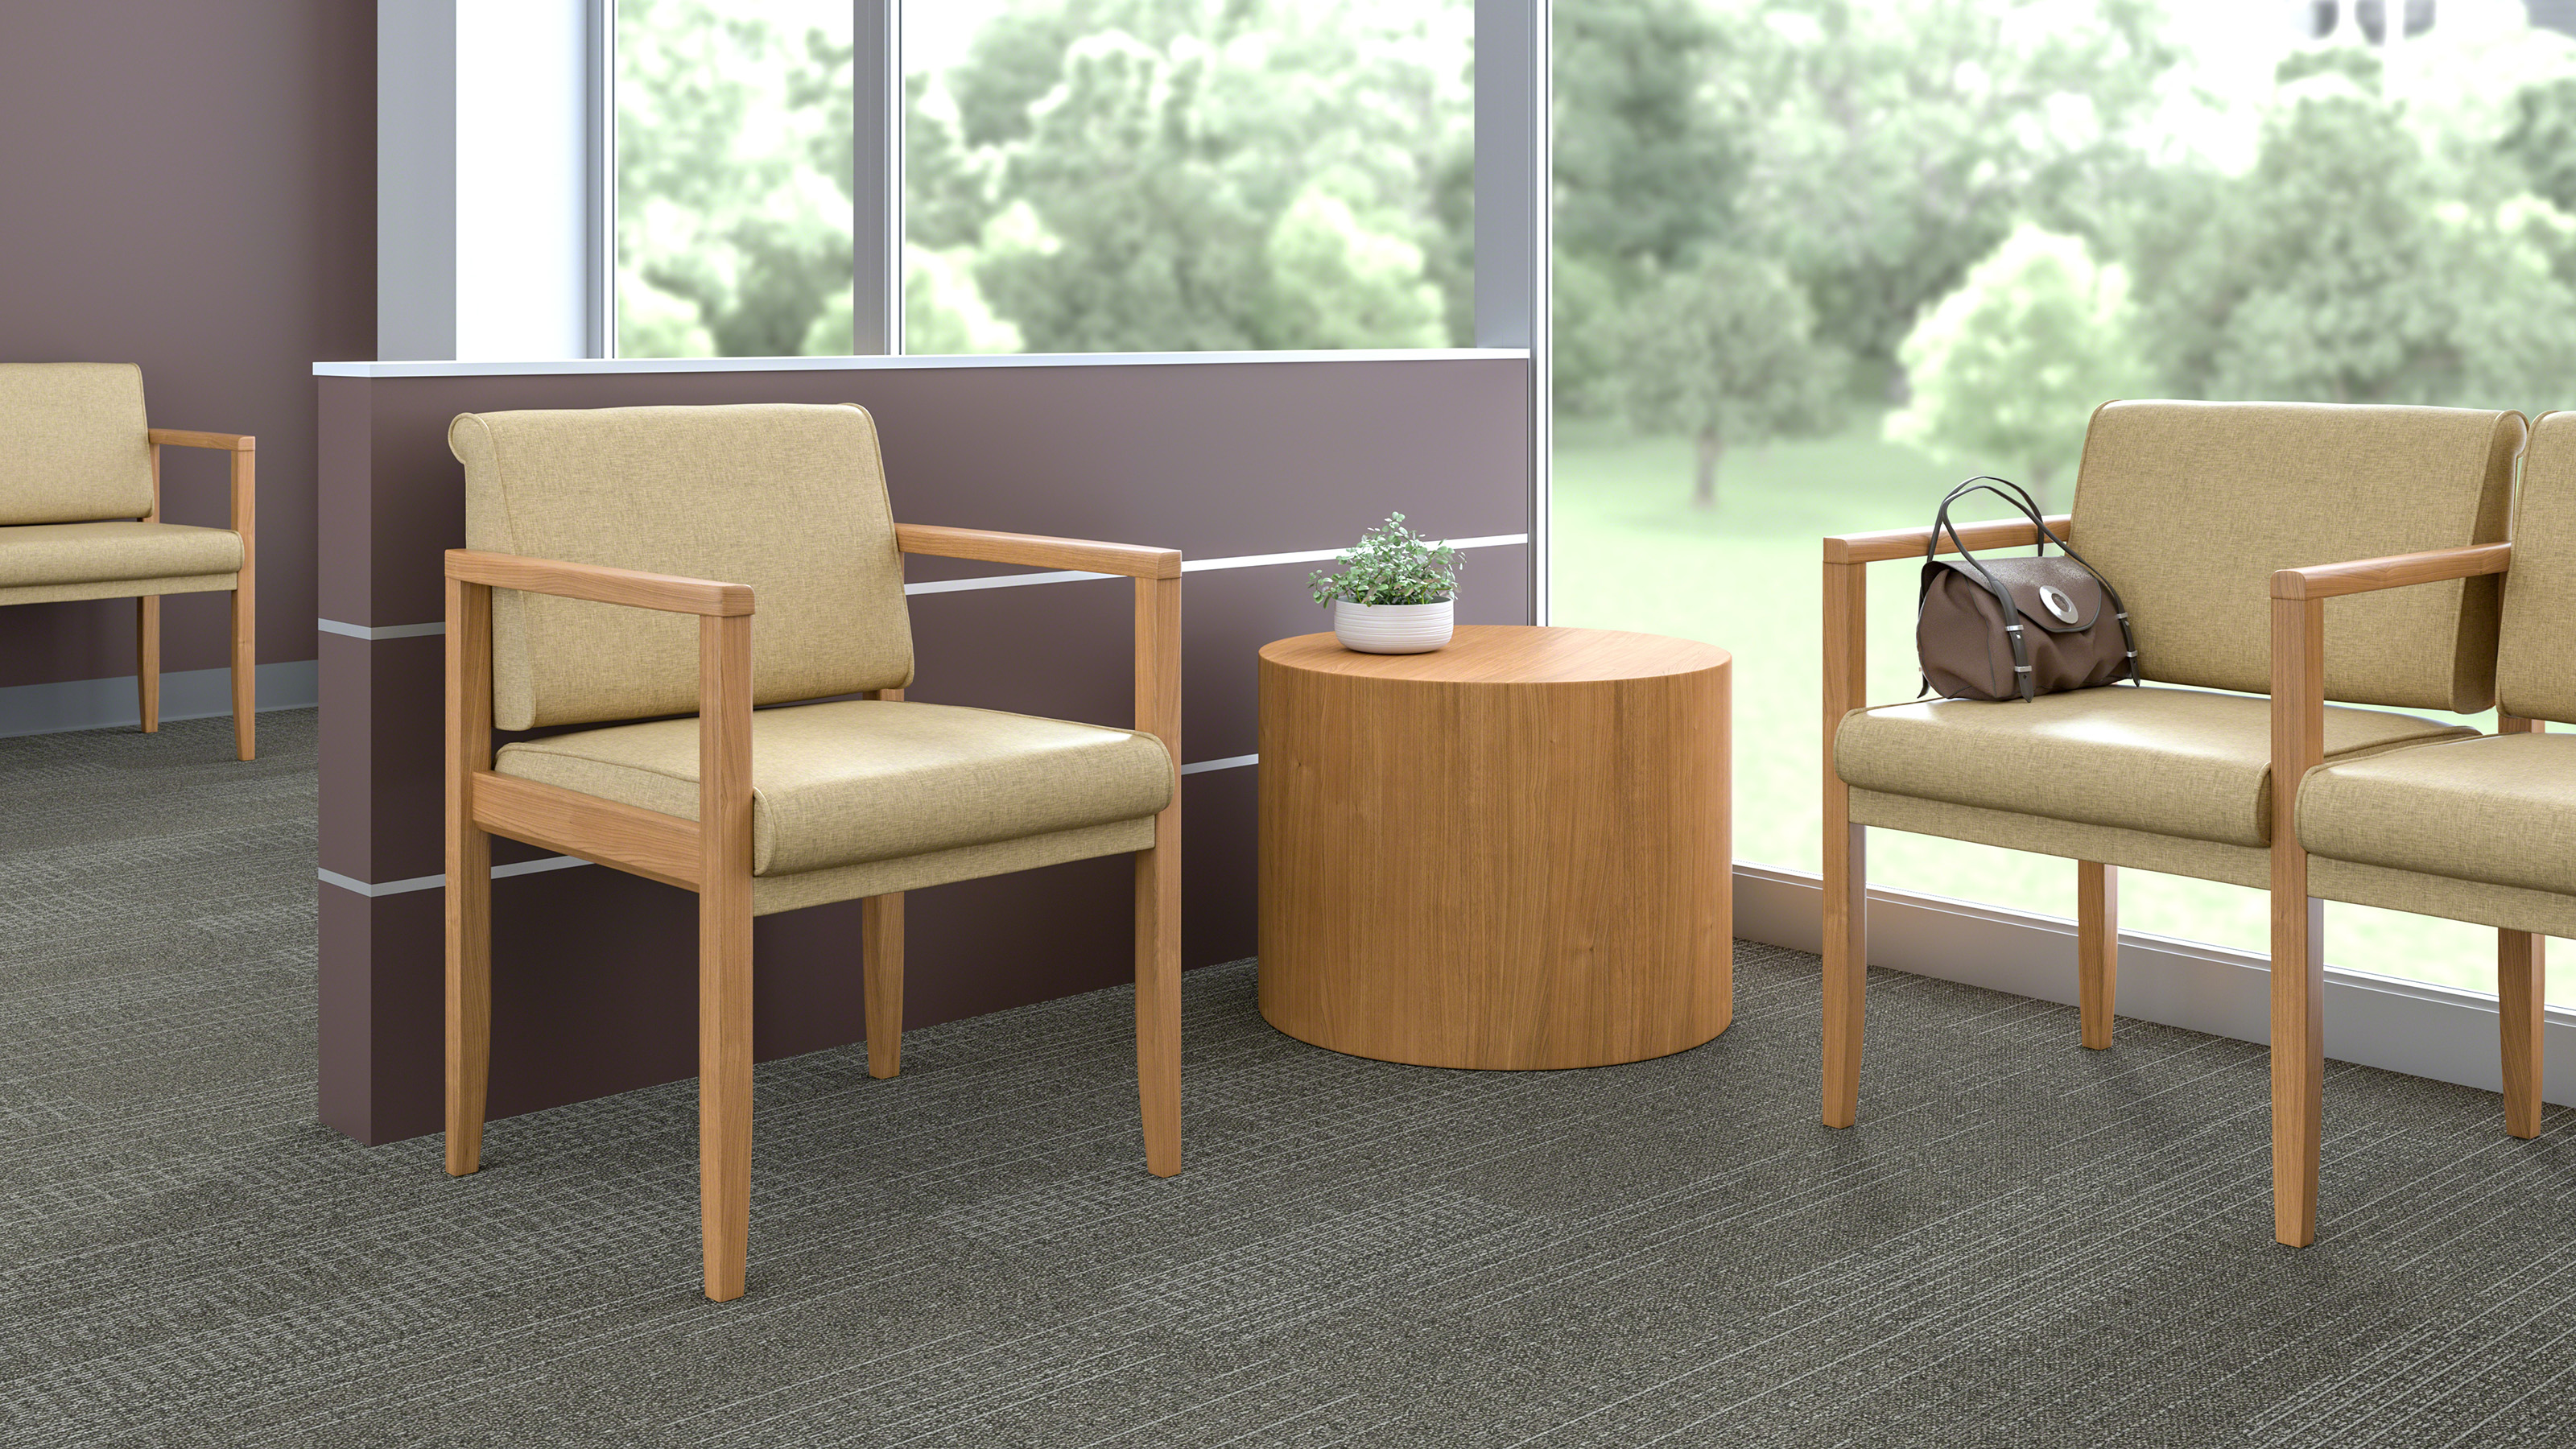 Malibu Reception Chairs & Healthcare Furniture Steelcase